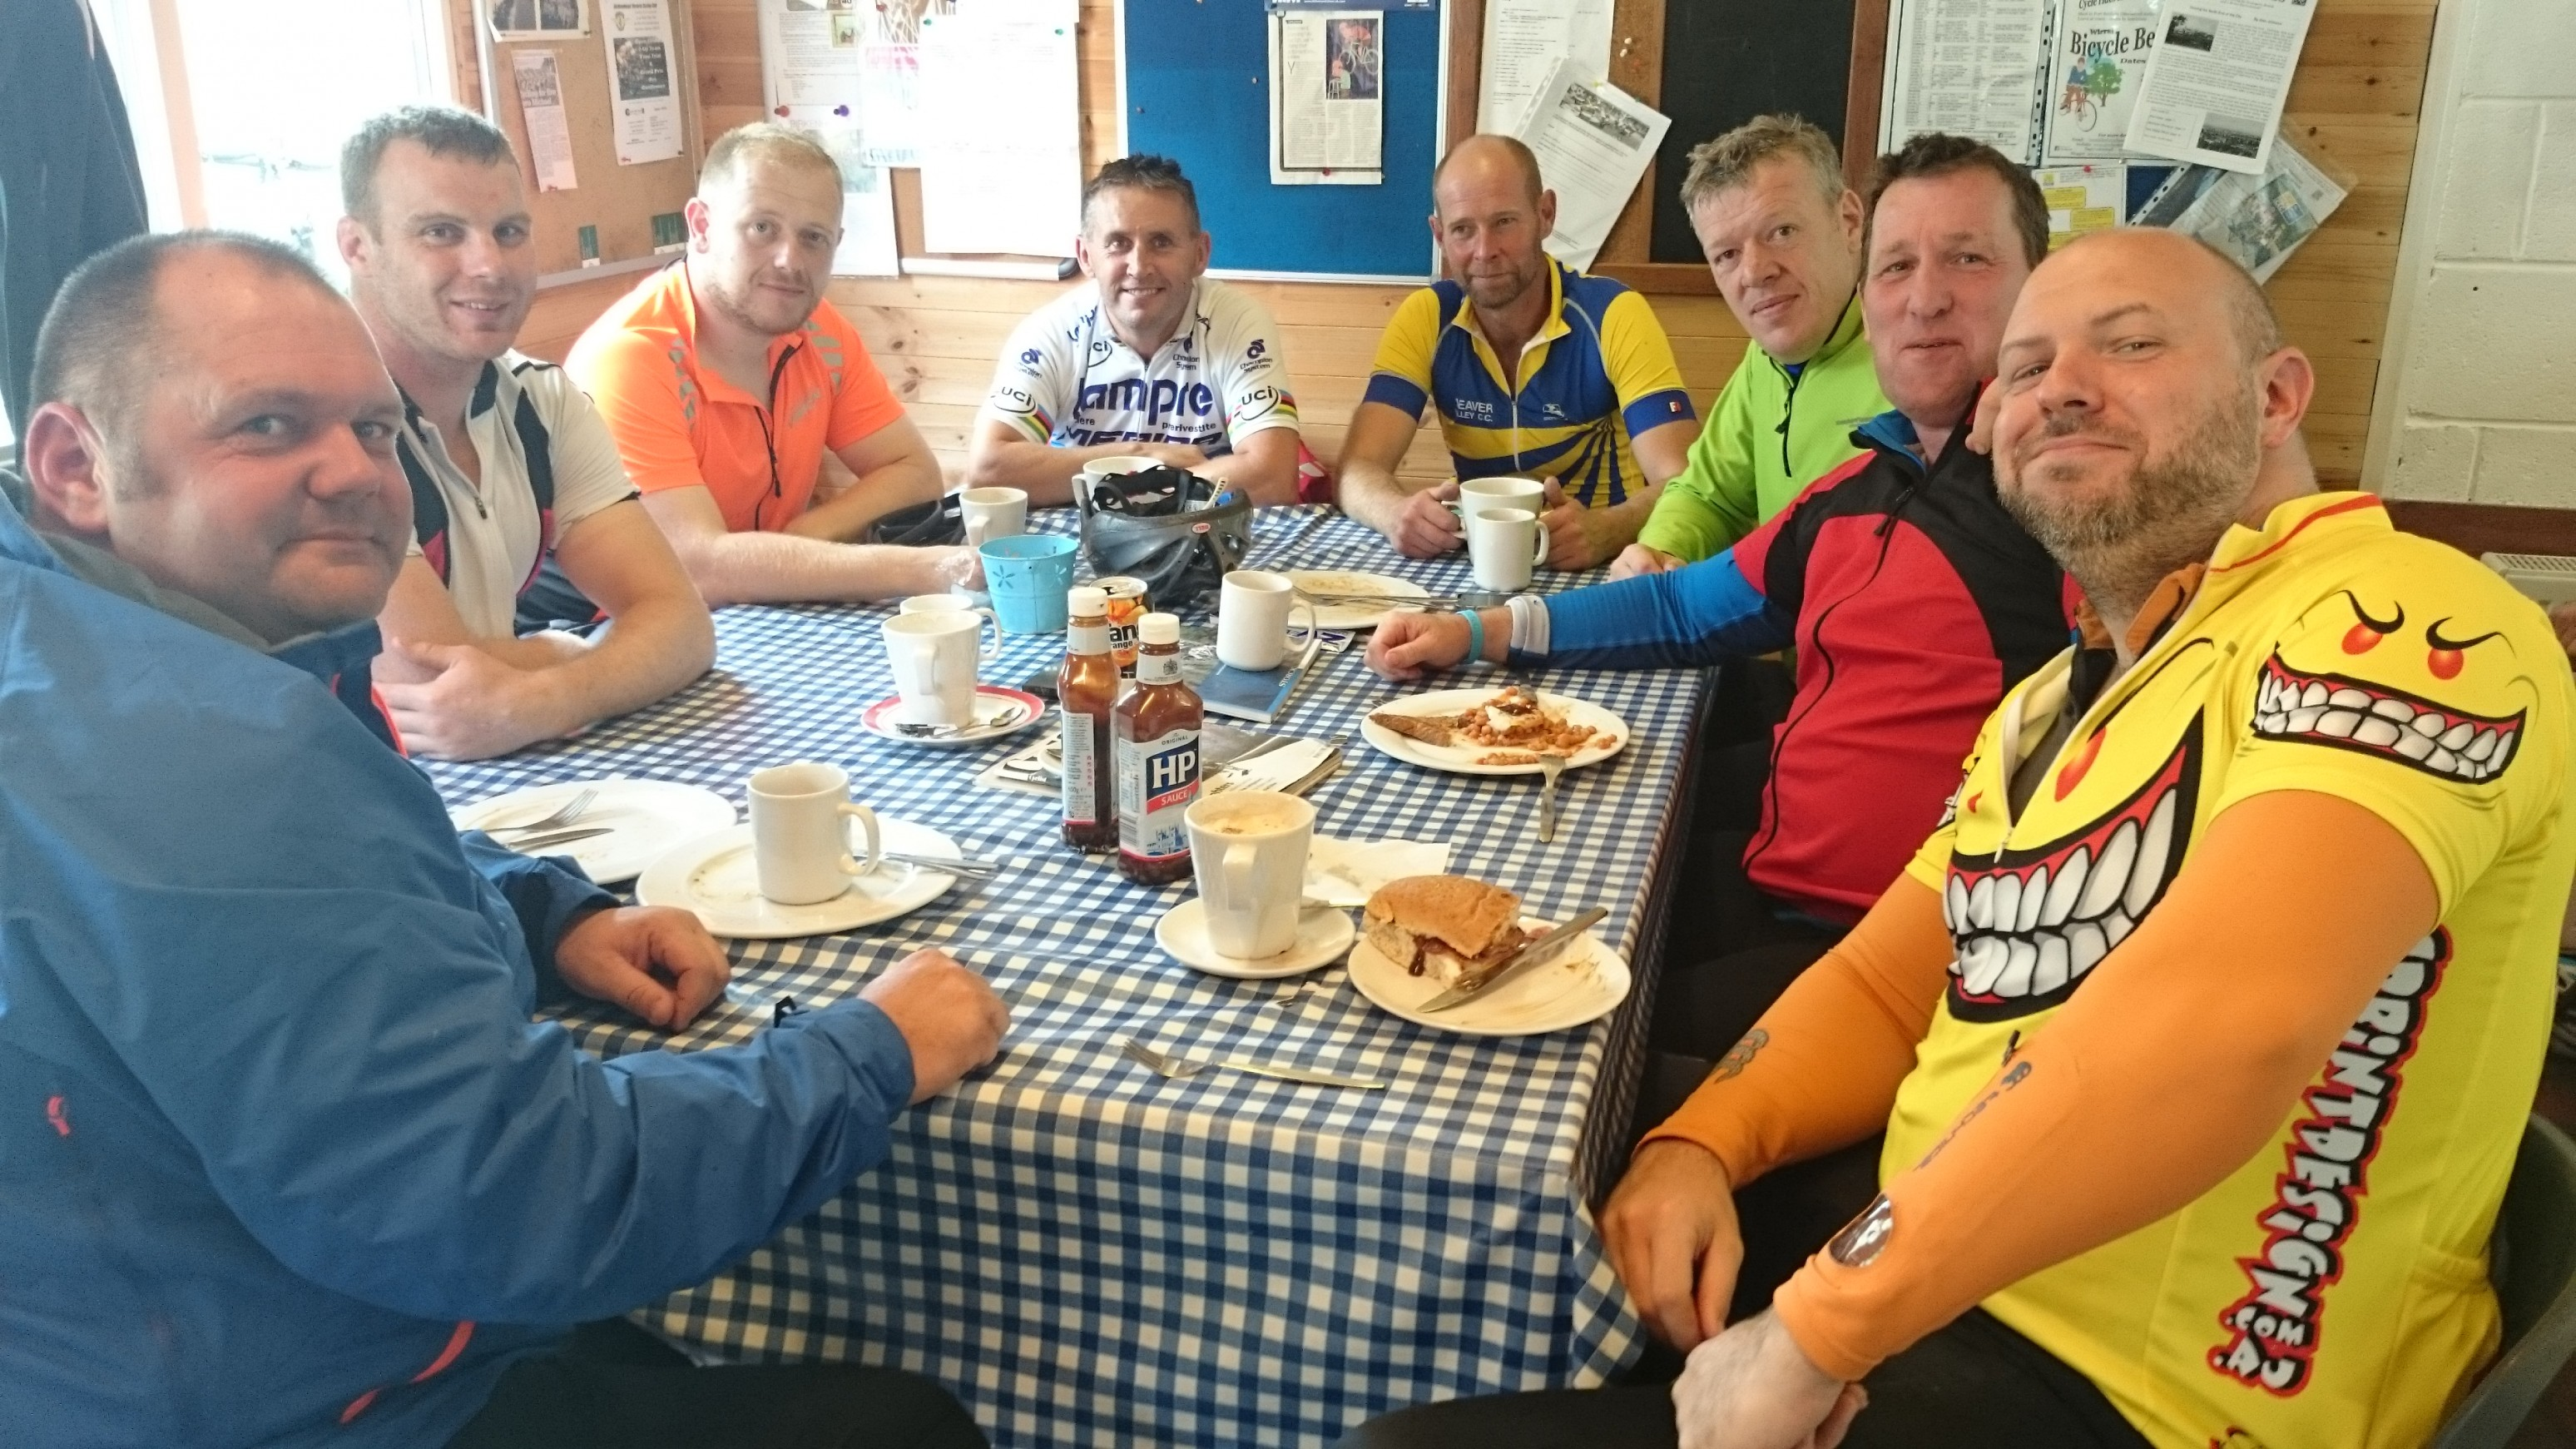 The guys from Winnington Park RC, enjoying the finest fayre from Eureka cafe at the mills.